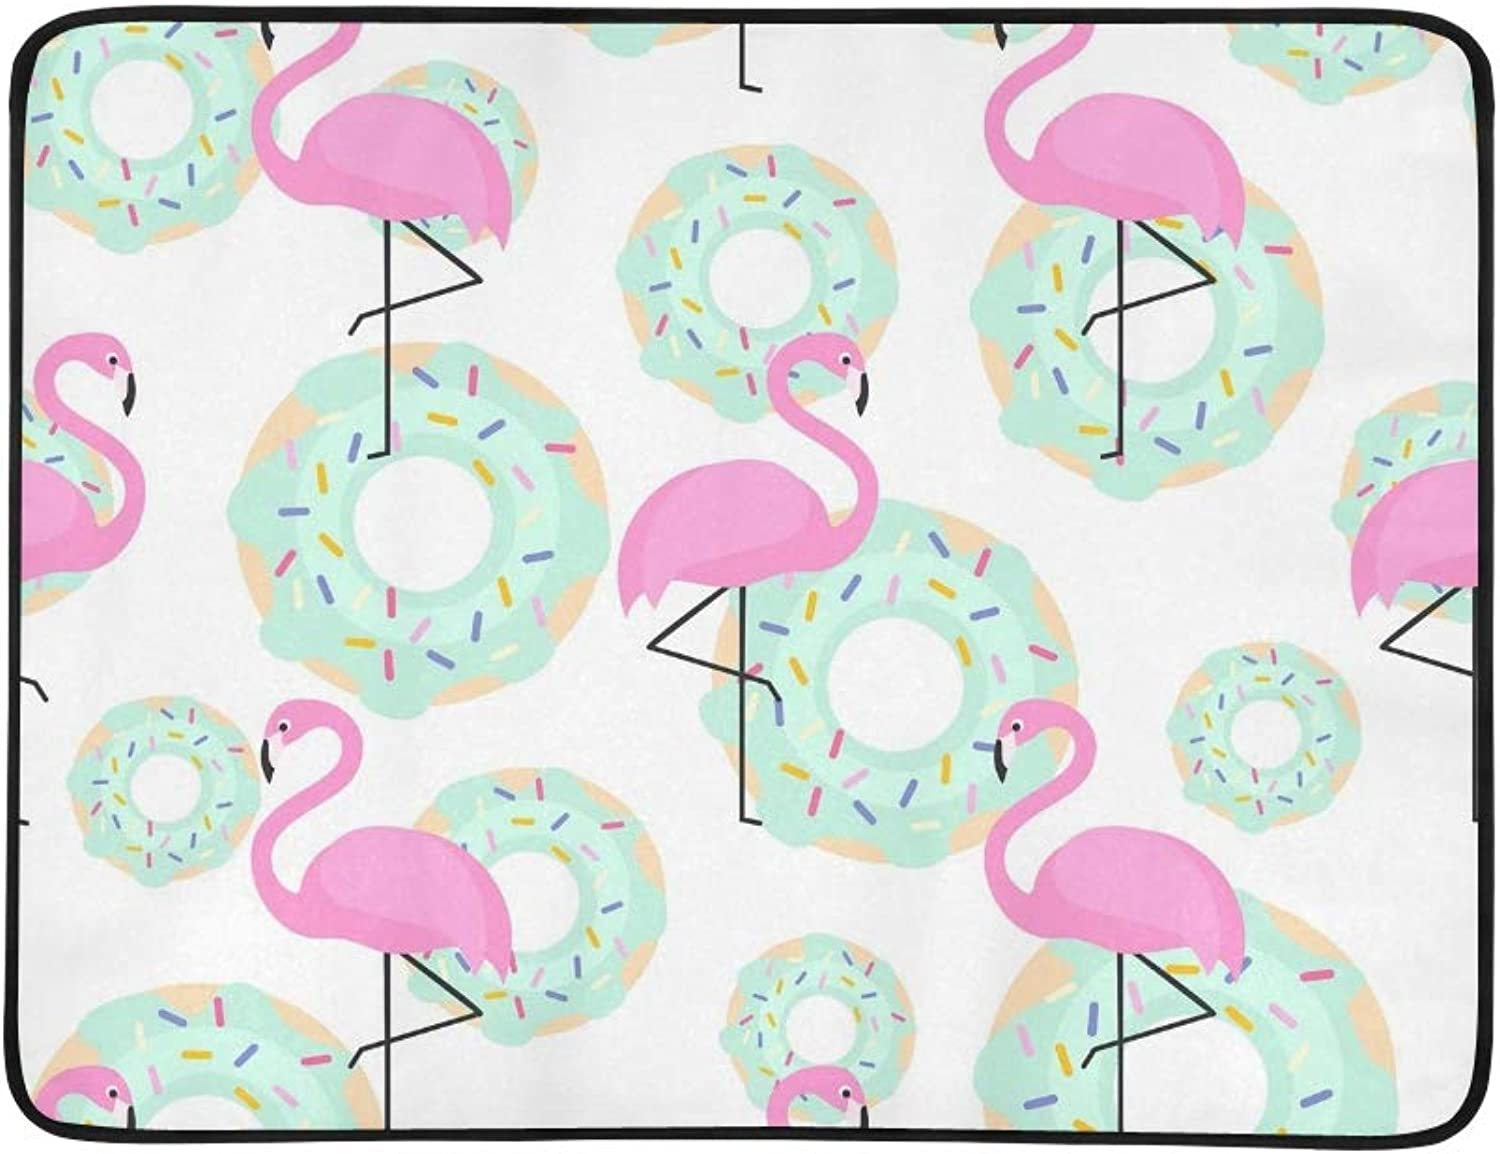 Pink Flamingos Donuts Trendy Portable and Foldable Blanket Mat 60x78 Inch Handy Mat for Camping Picnic Beach Indoor Outdoor Travel